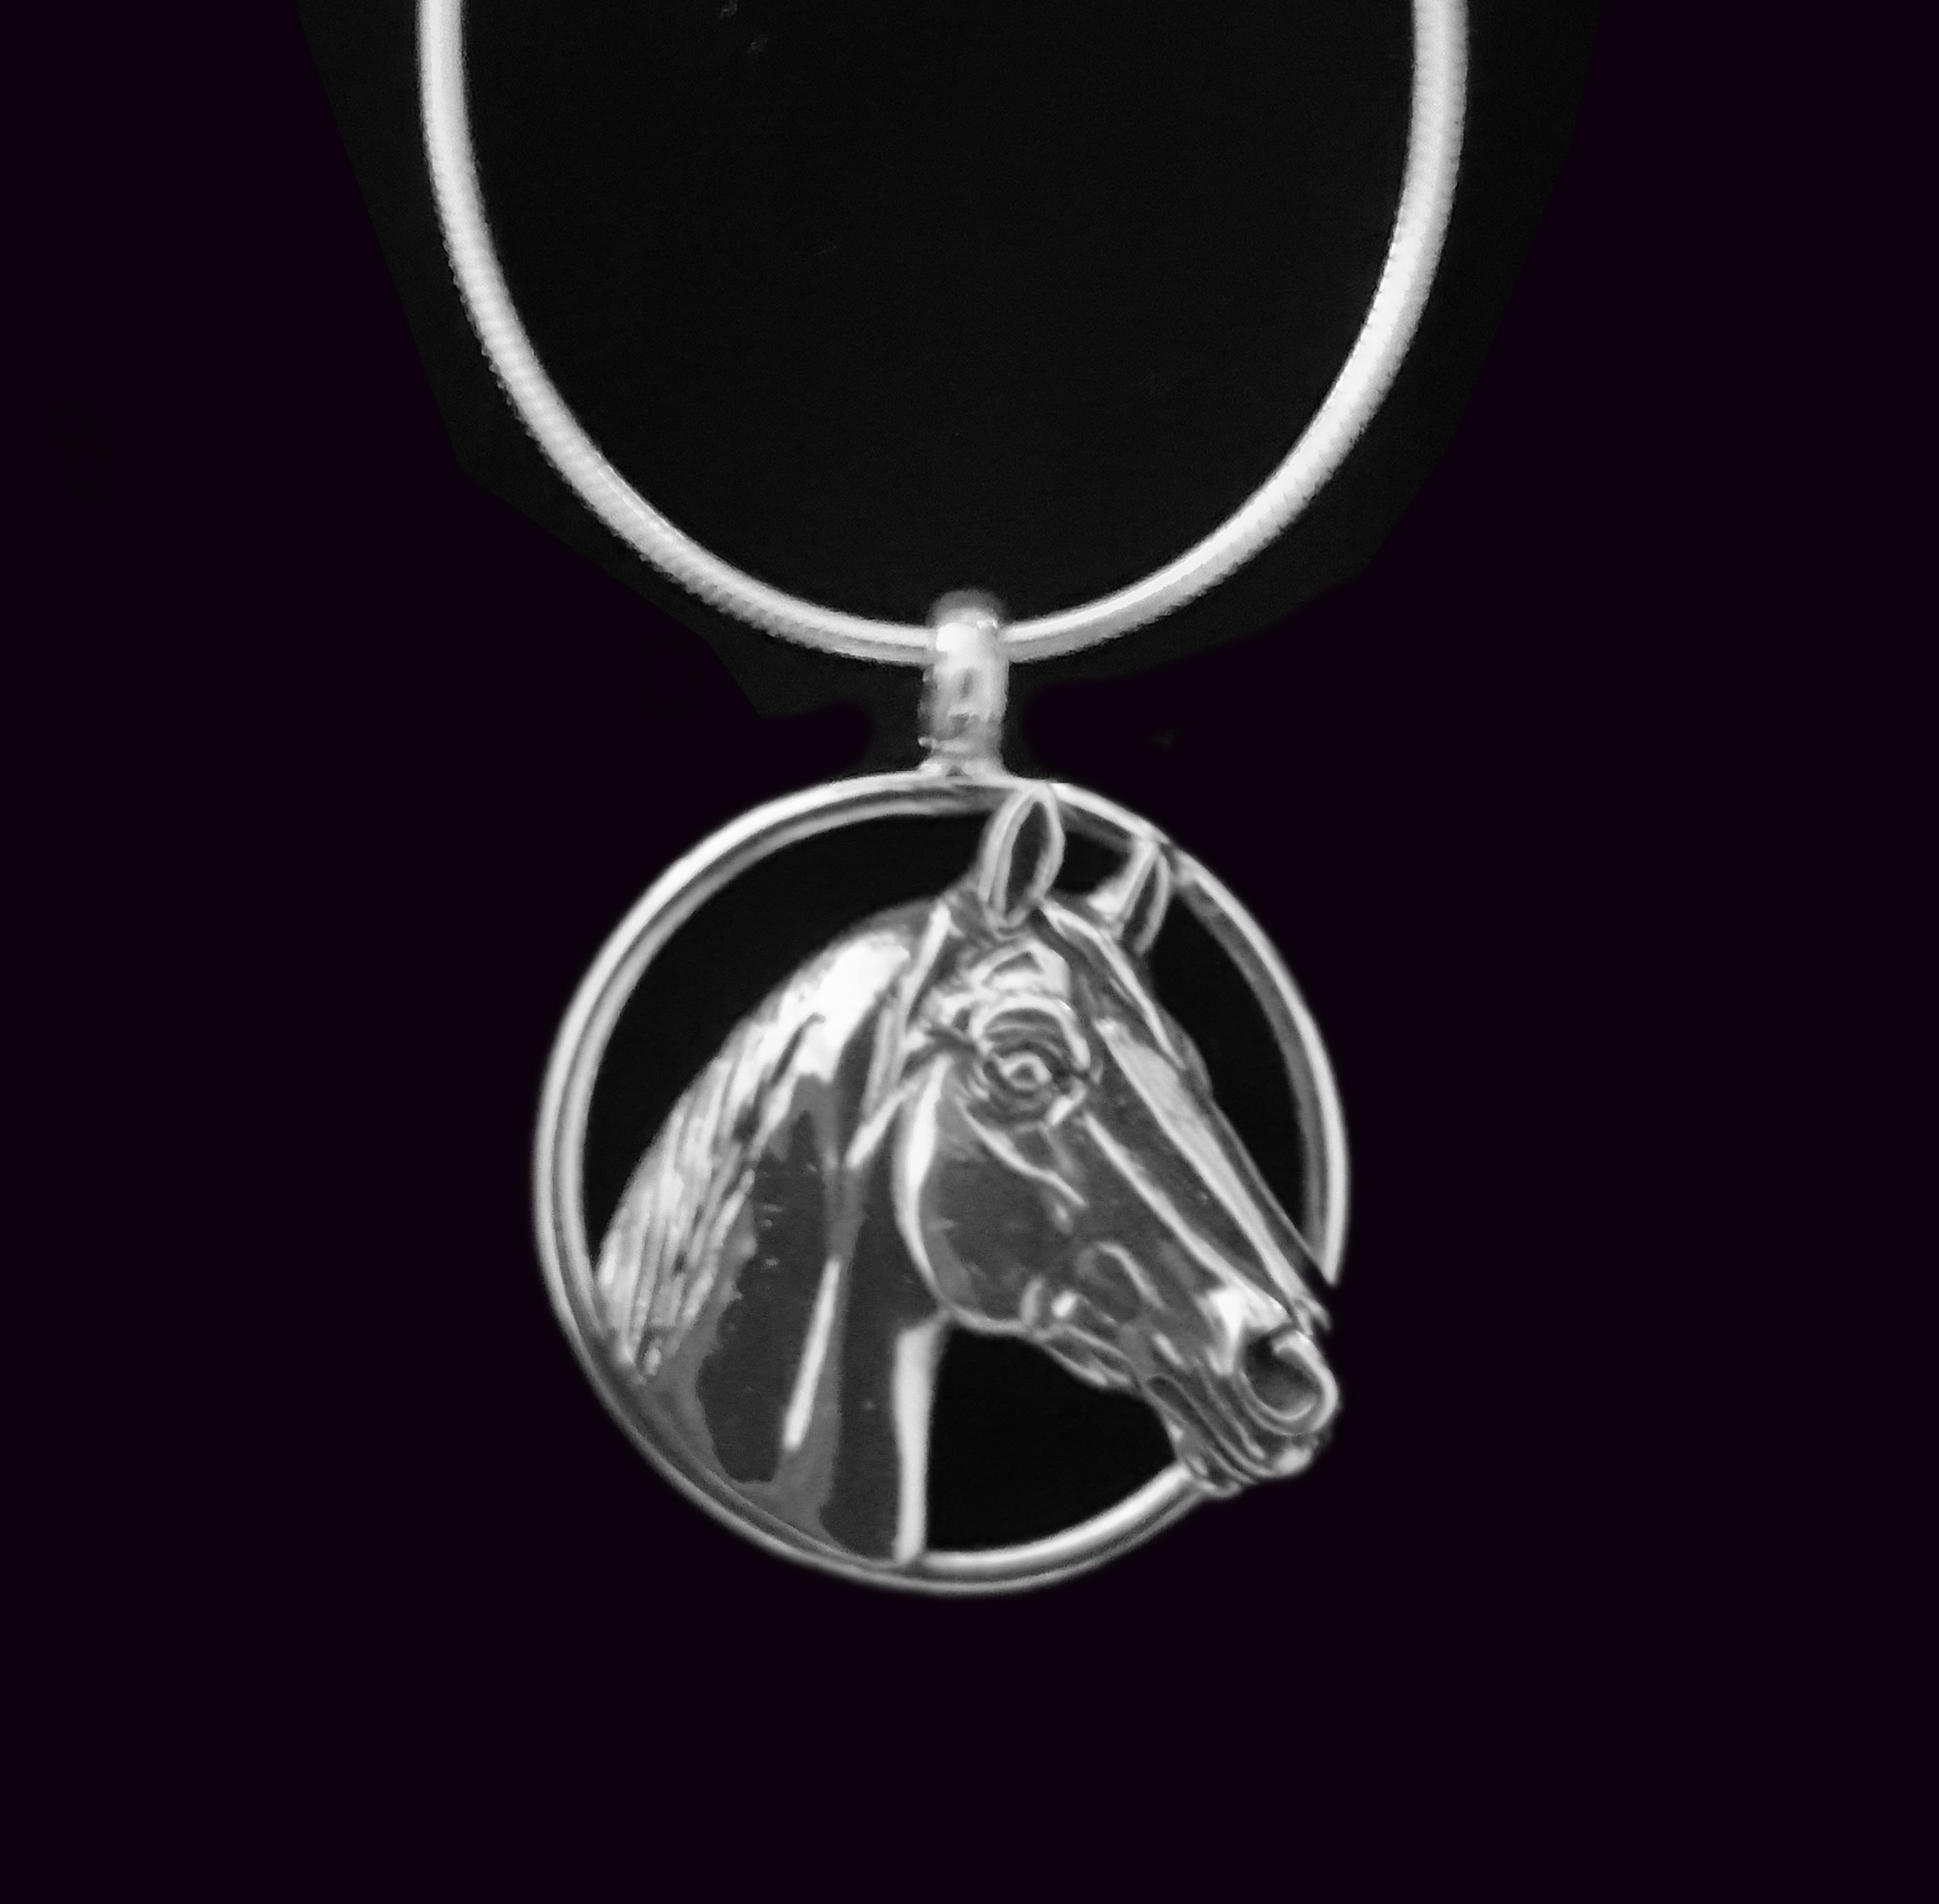 winning pony necklaces for and horse portrait sterling pendant profoundly plain a lovers equestrian baby crafted simple carries message but details of powerful look products framed round set pn aeravida it silver may this necklace horses